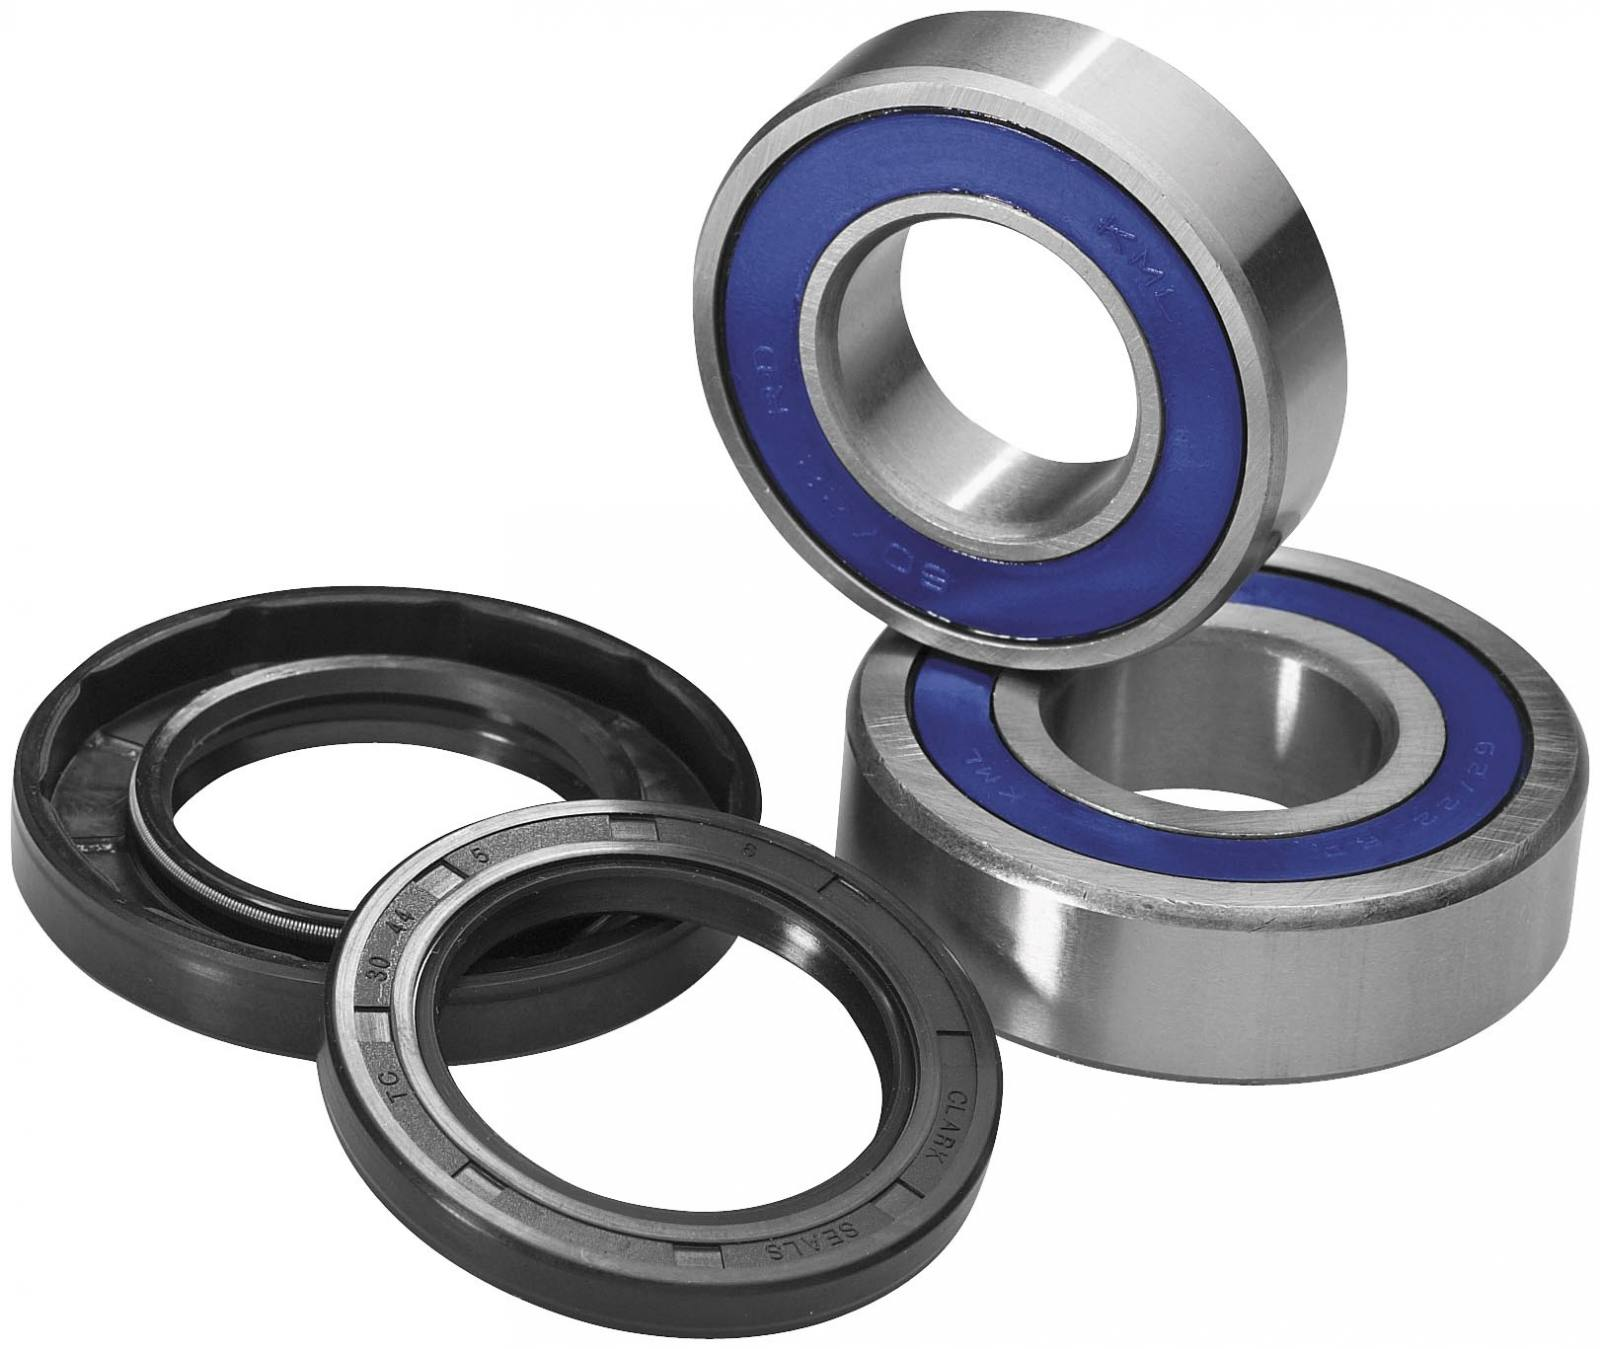 Wheel bearing kit for sale in thomaston ct roost powersports 860 283 7223